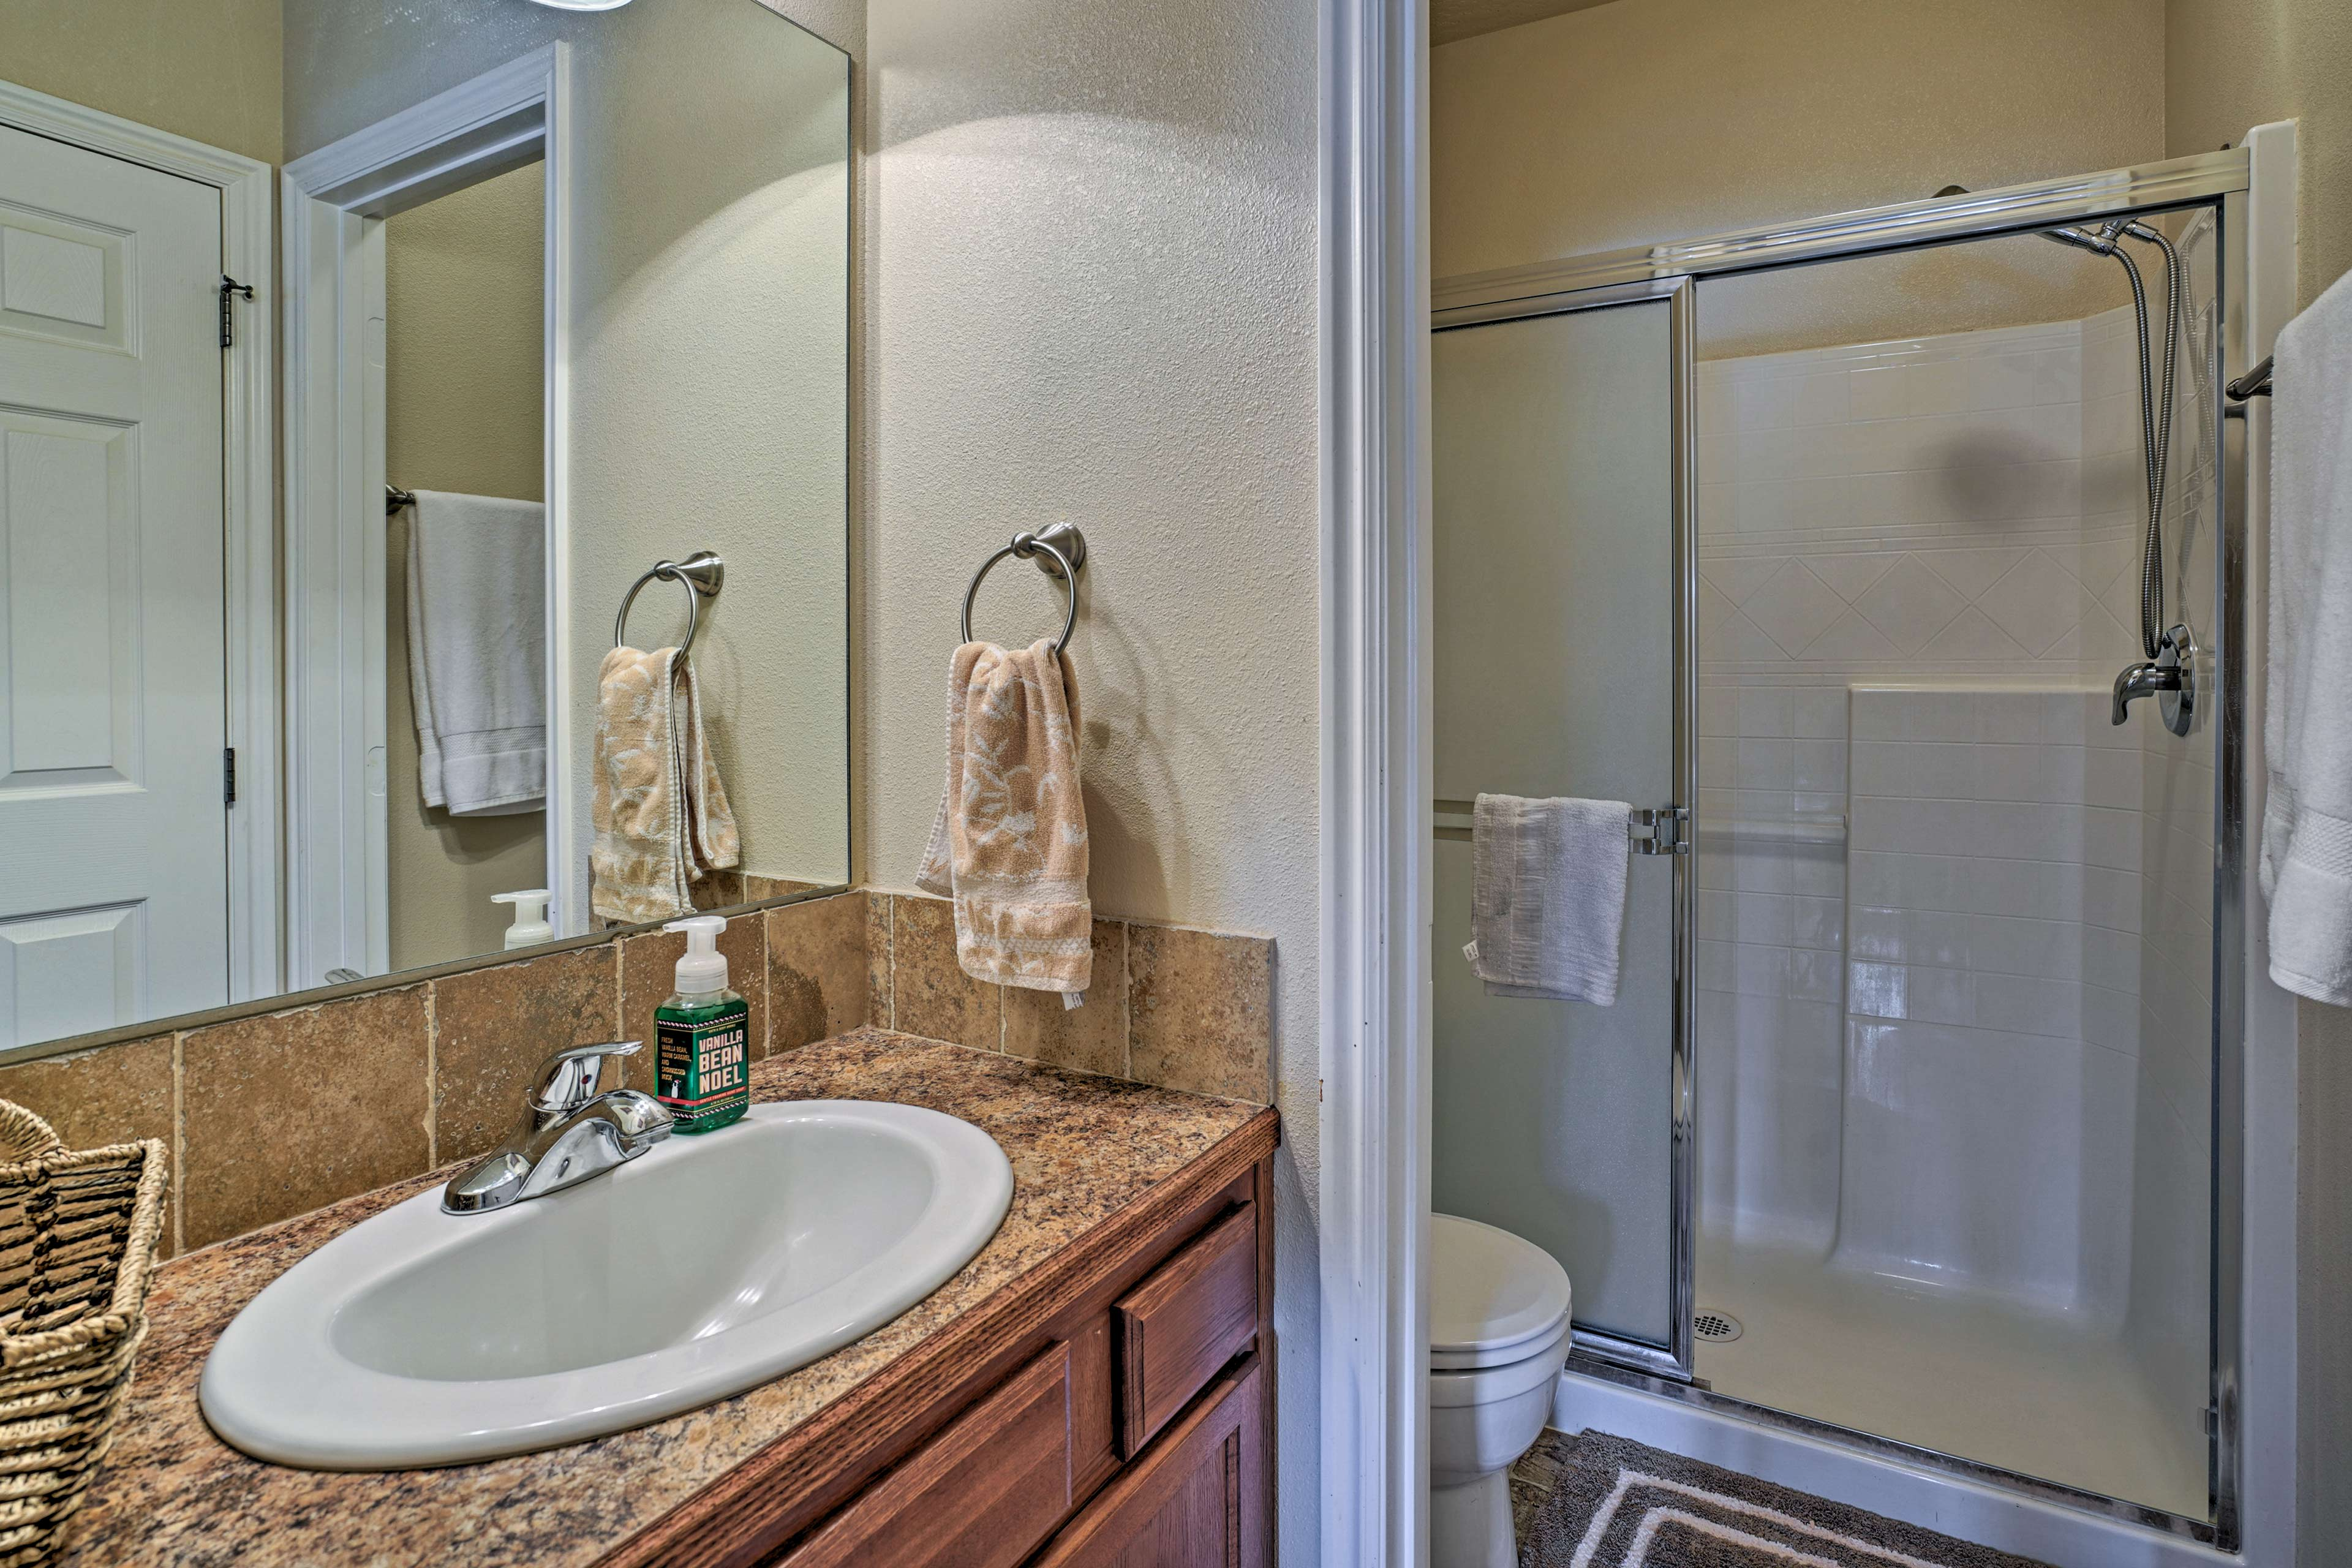 After a day on the mountain, enjoy a cleansing rinse in the walk-in shower.